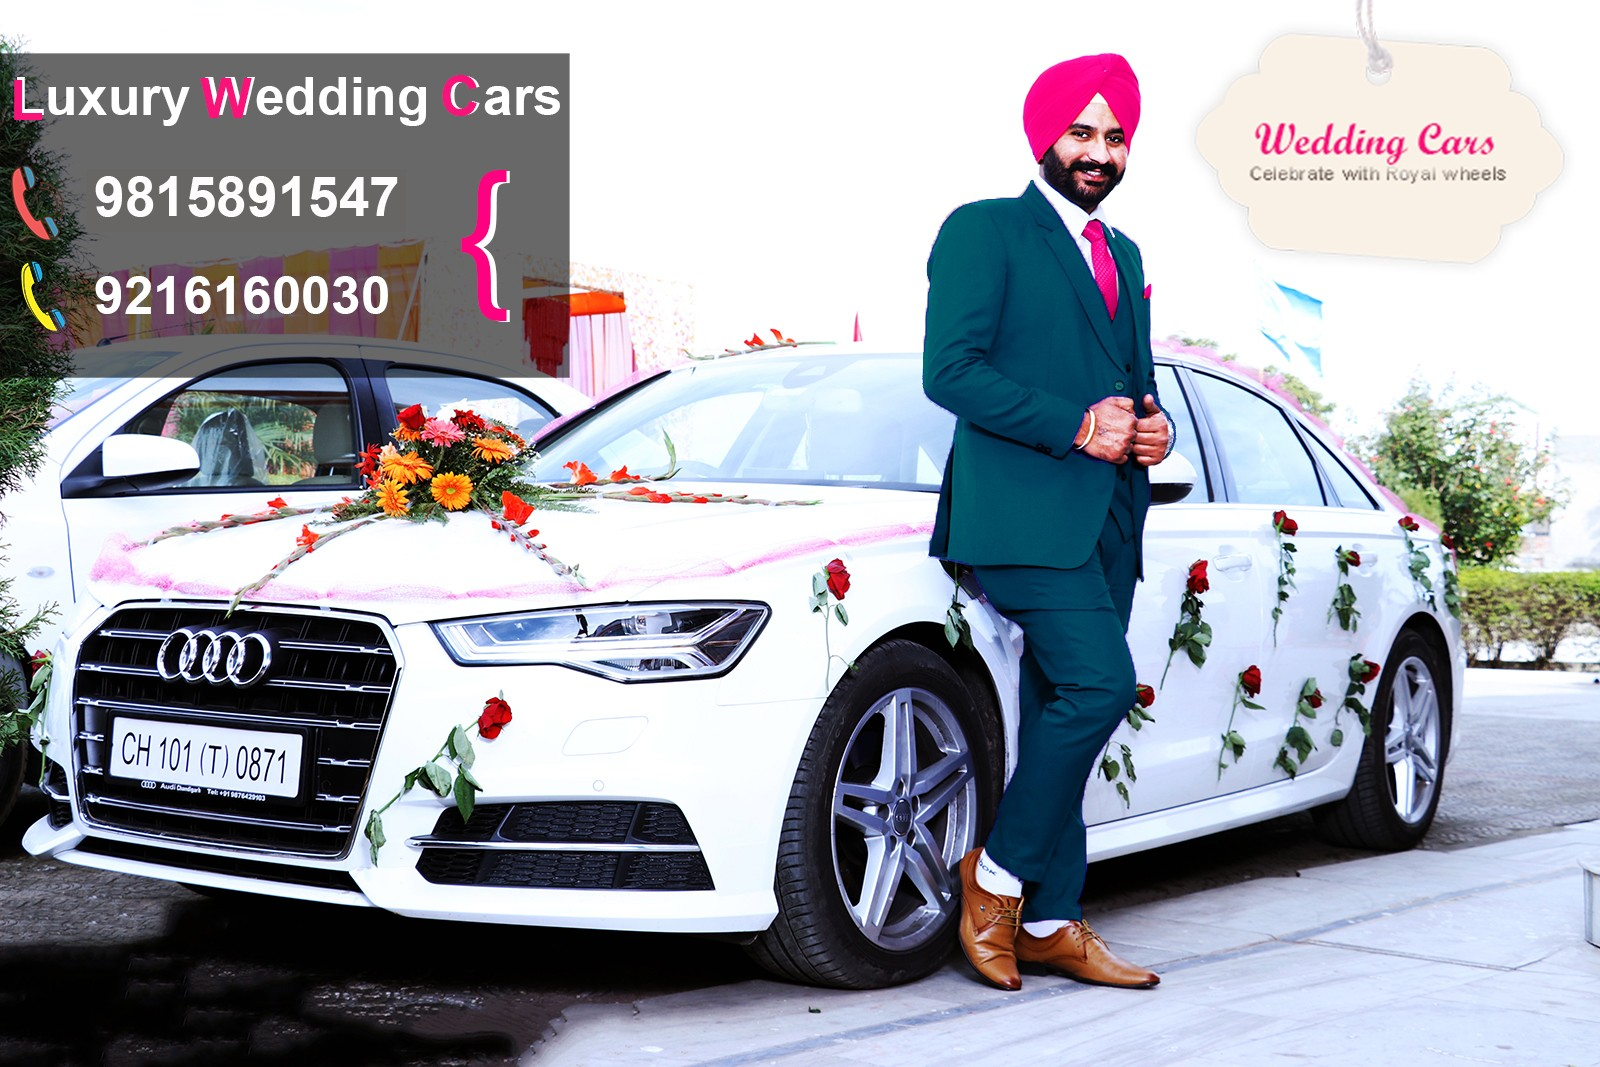 Morinda wedding cars, luxury wedding car hire in Morinda like audi, mercedes, bmw